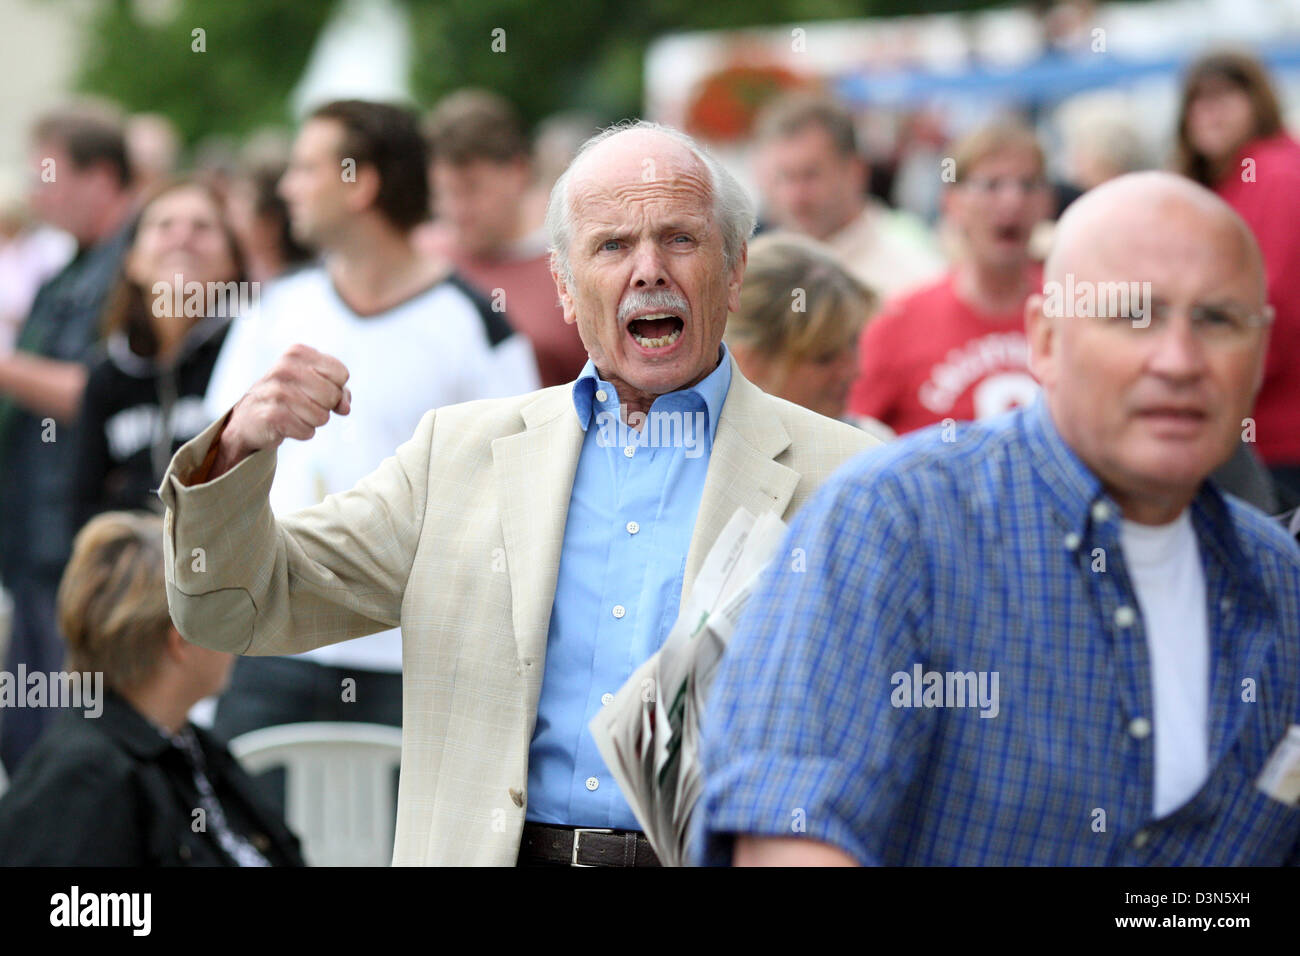 Hamburg, Germany, man on a racecourse cheers on his horse - Stock Image